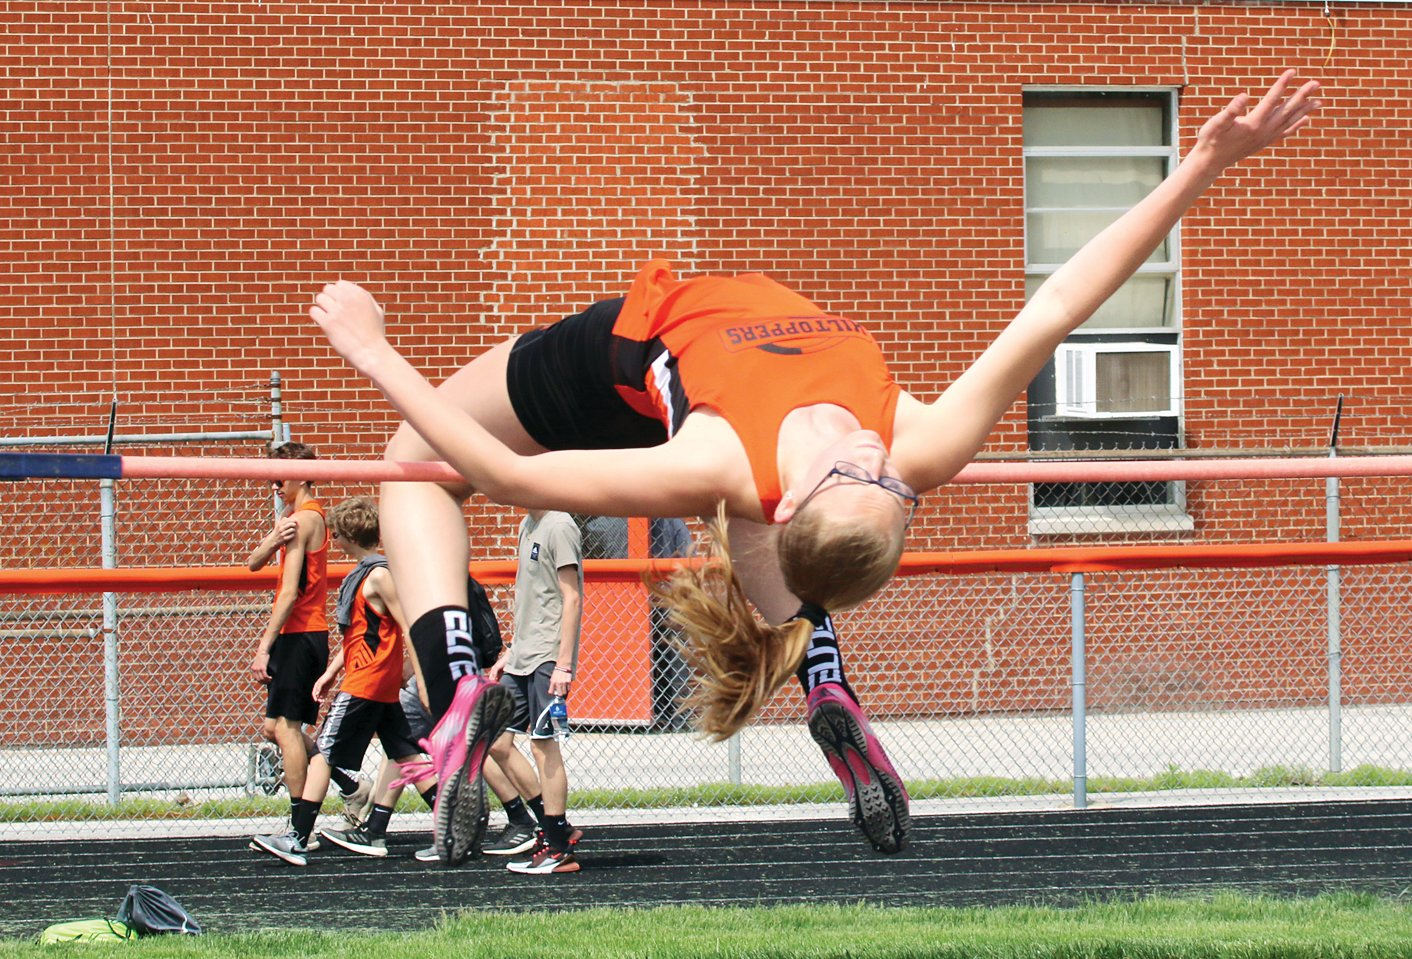 "Hillsboro freshman Kaci Papin cleared 5'5"" to tie the school record and win the high jump in the South Central Conference Meet on Monday, May 6, at Hillsboro. Papin would go on to clear 5'3"" in the high jump in Wednesday's sectional in Springfield, earning a spot at the IHSA State Finals next week."